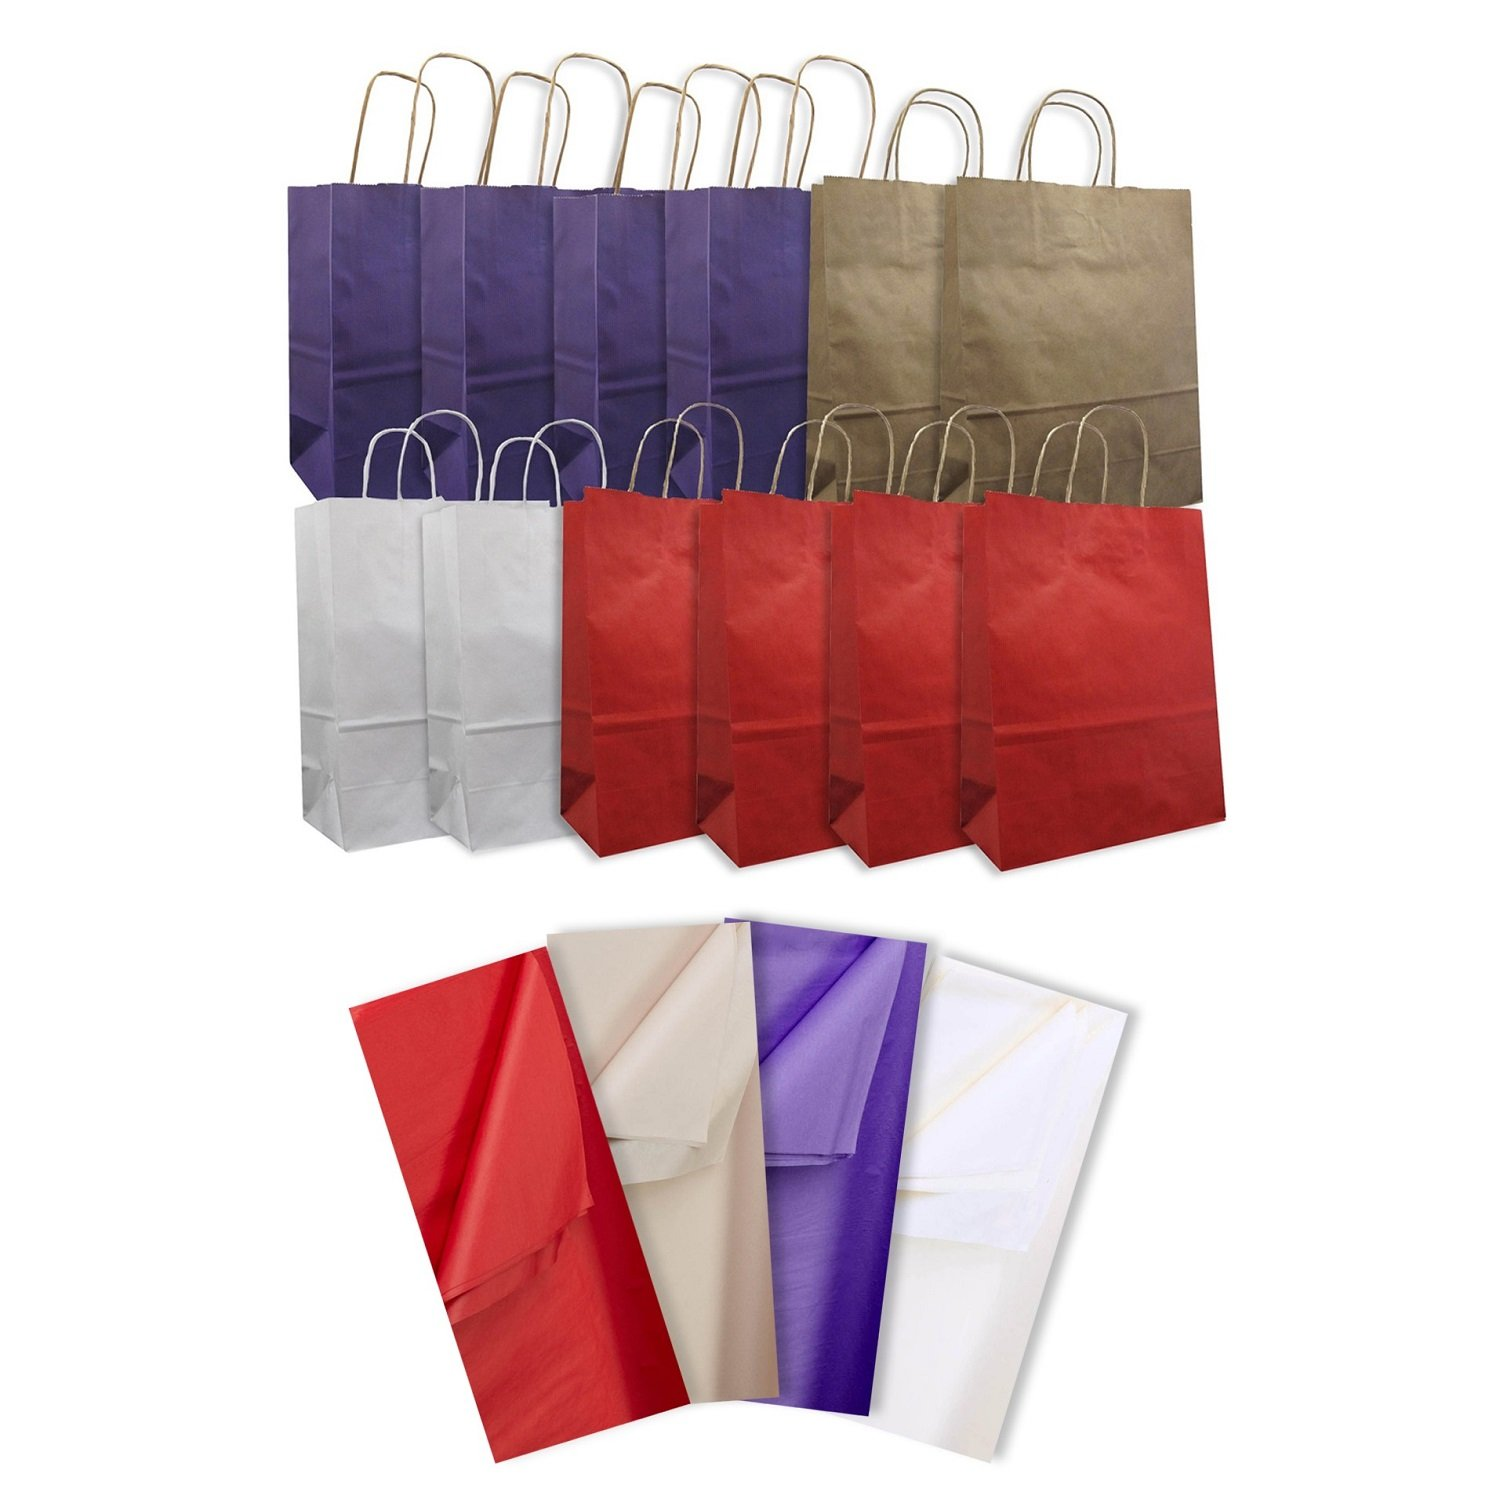 Jillson Roberts 12-Count Large Kraft Bags with Tissue Solid Color Assortment, Purple/Red/Natural/White